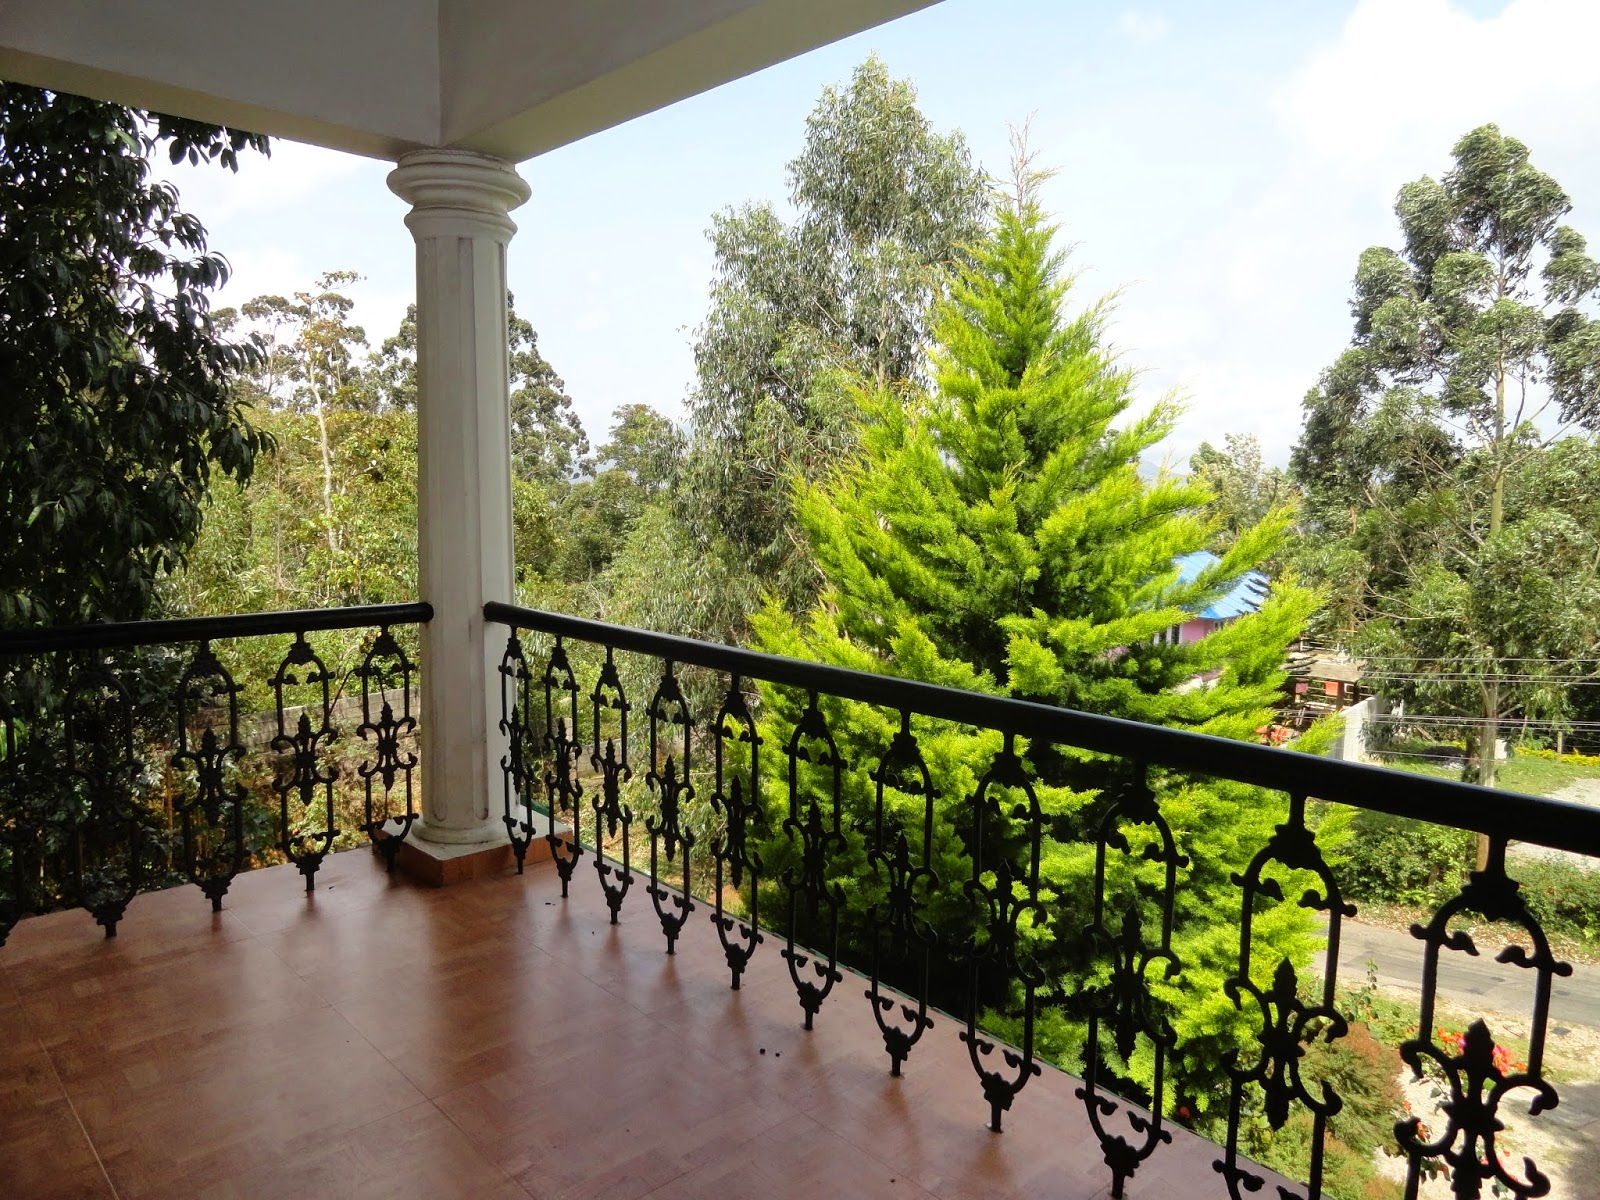 munnar cottages price, munnar cottages accommodation, munnar cottages online booking